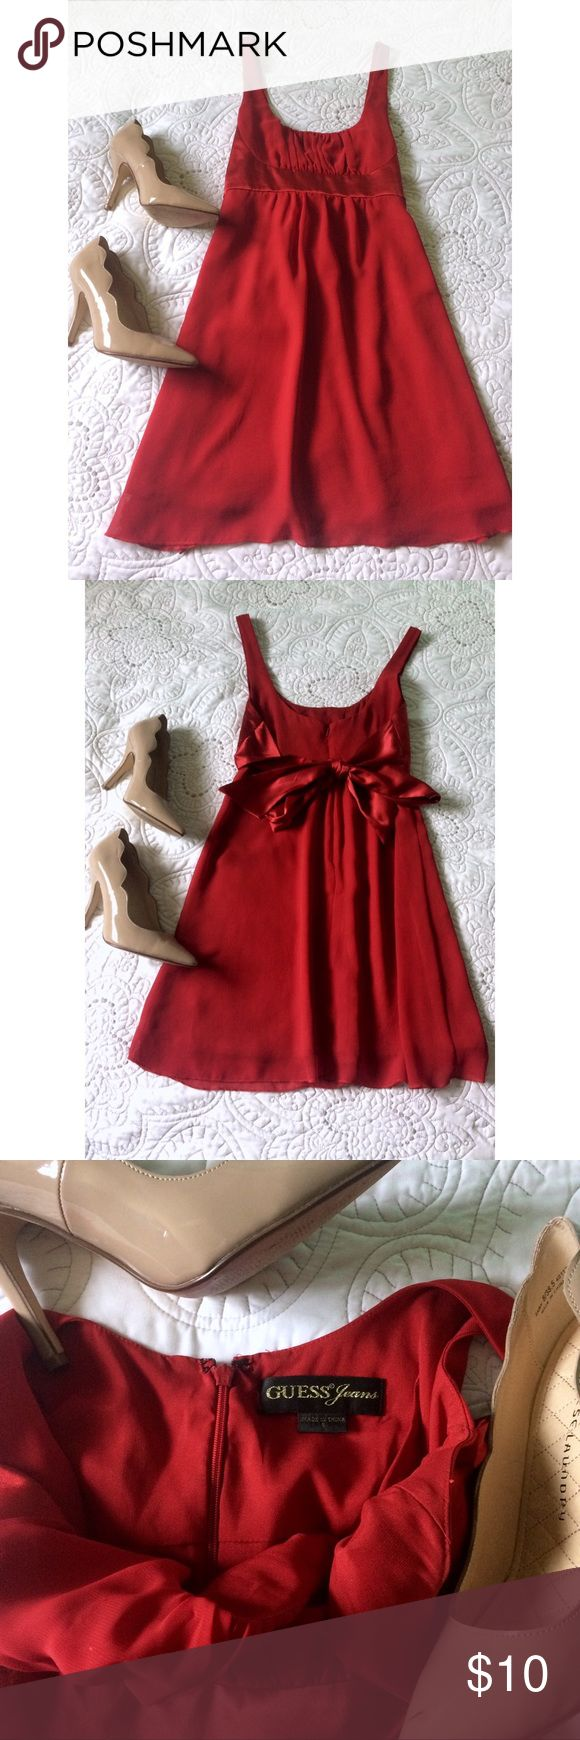 """GUESS Red Chiffon Dress (S) Flowy red dress. Chiffon fabric with silky satin tie-back waistband.  Features a pleated bodice, empire waist, and a-line skirt. Back zipper closure. 33.5"""" in length. Size small. No flaws! Guess Dresses"""